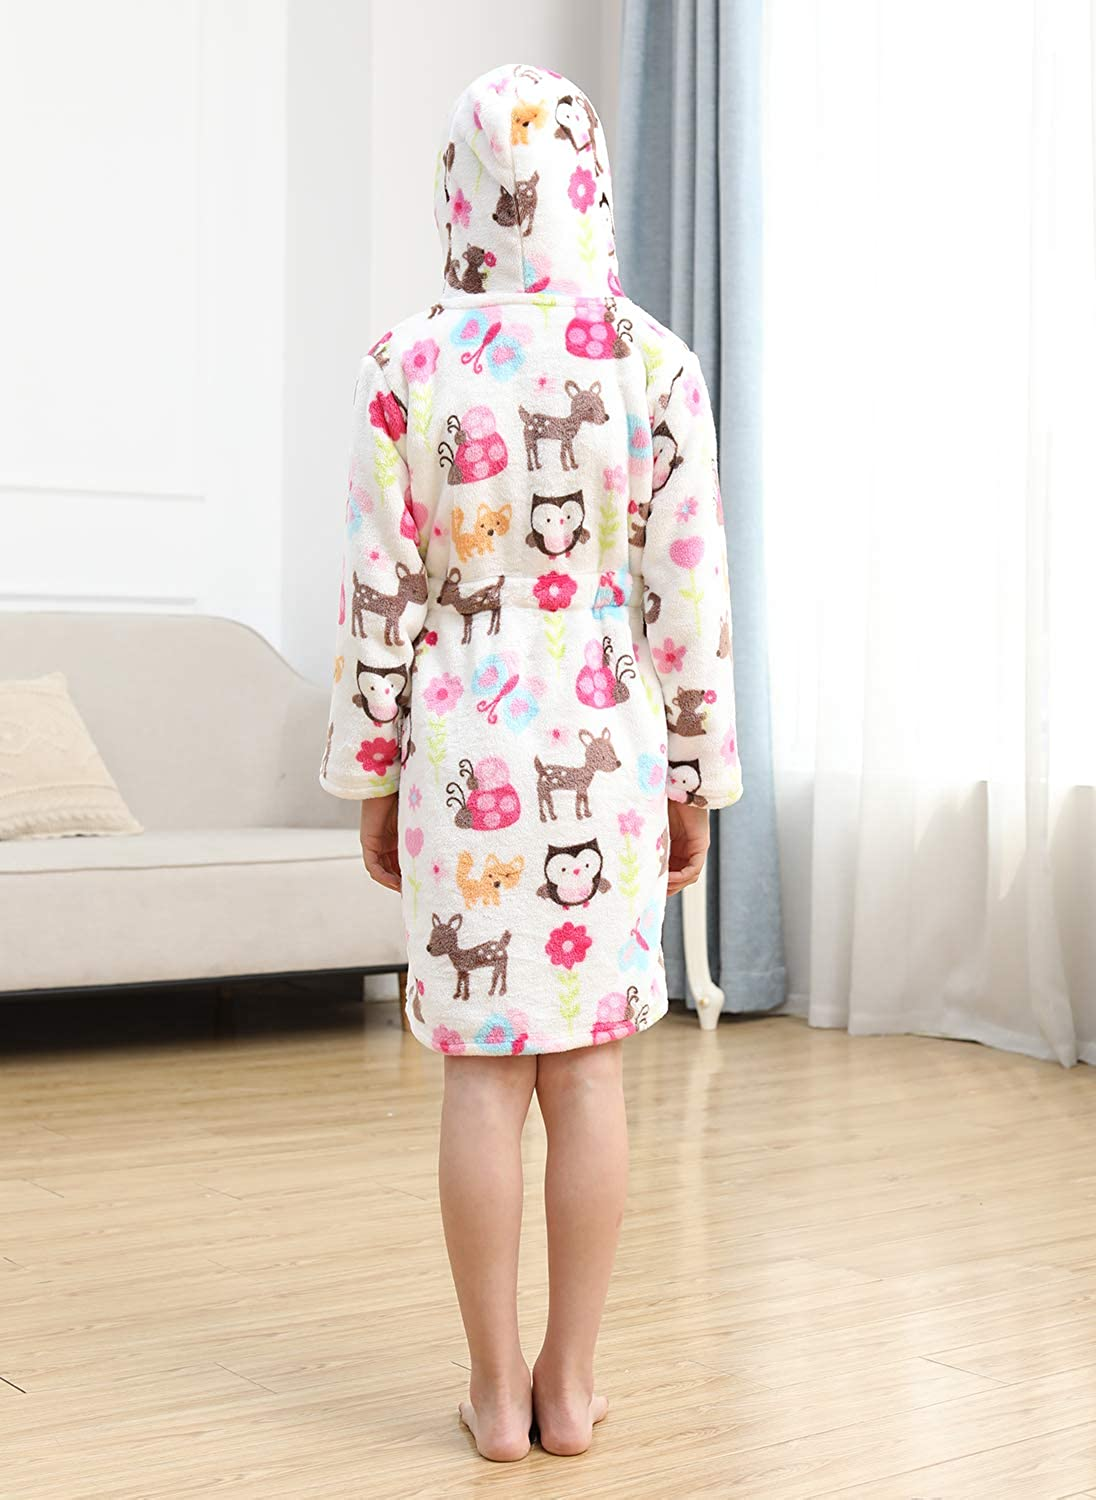 Unisex Kids Bathrobe Soft Plush Robe Warm Hooded Nightgown Gifts